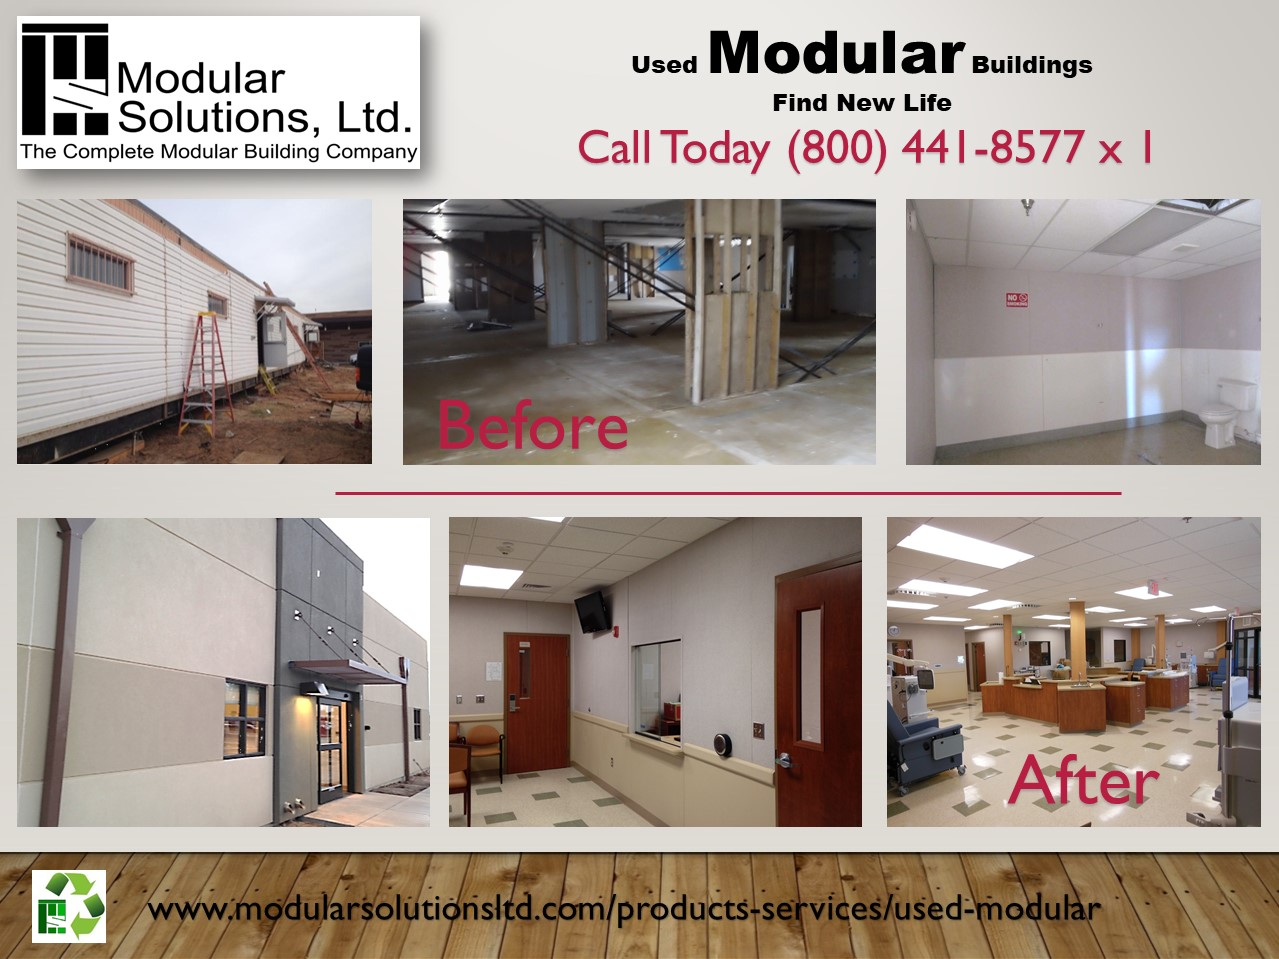 Modular Solutions used buildings